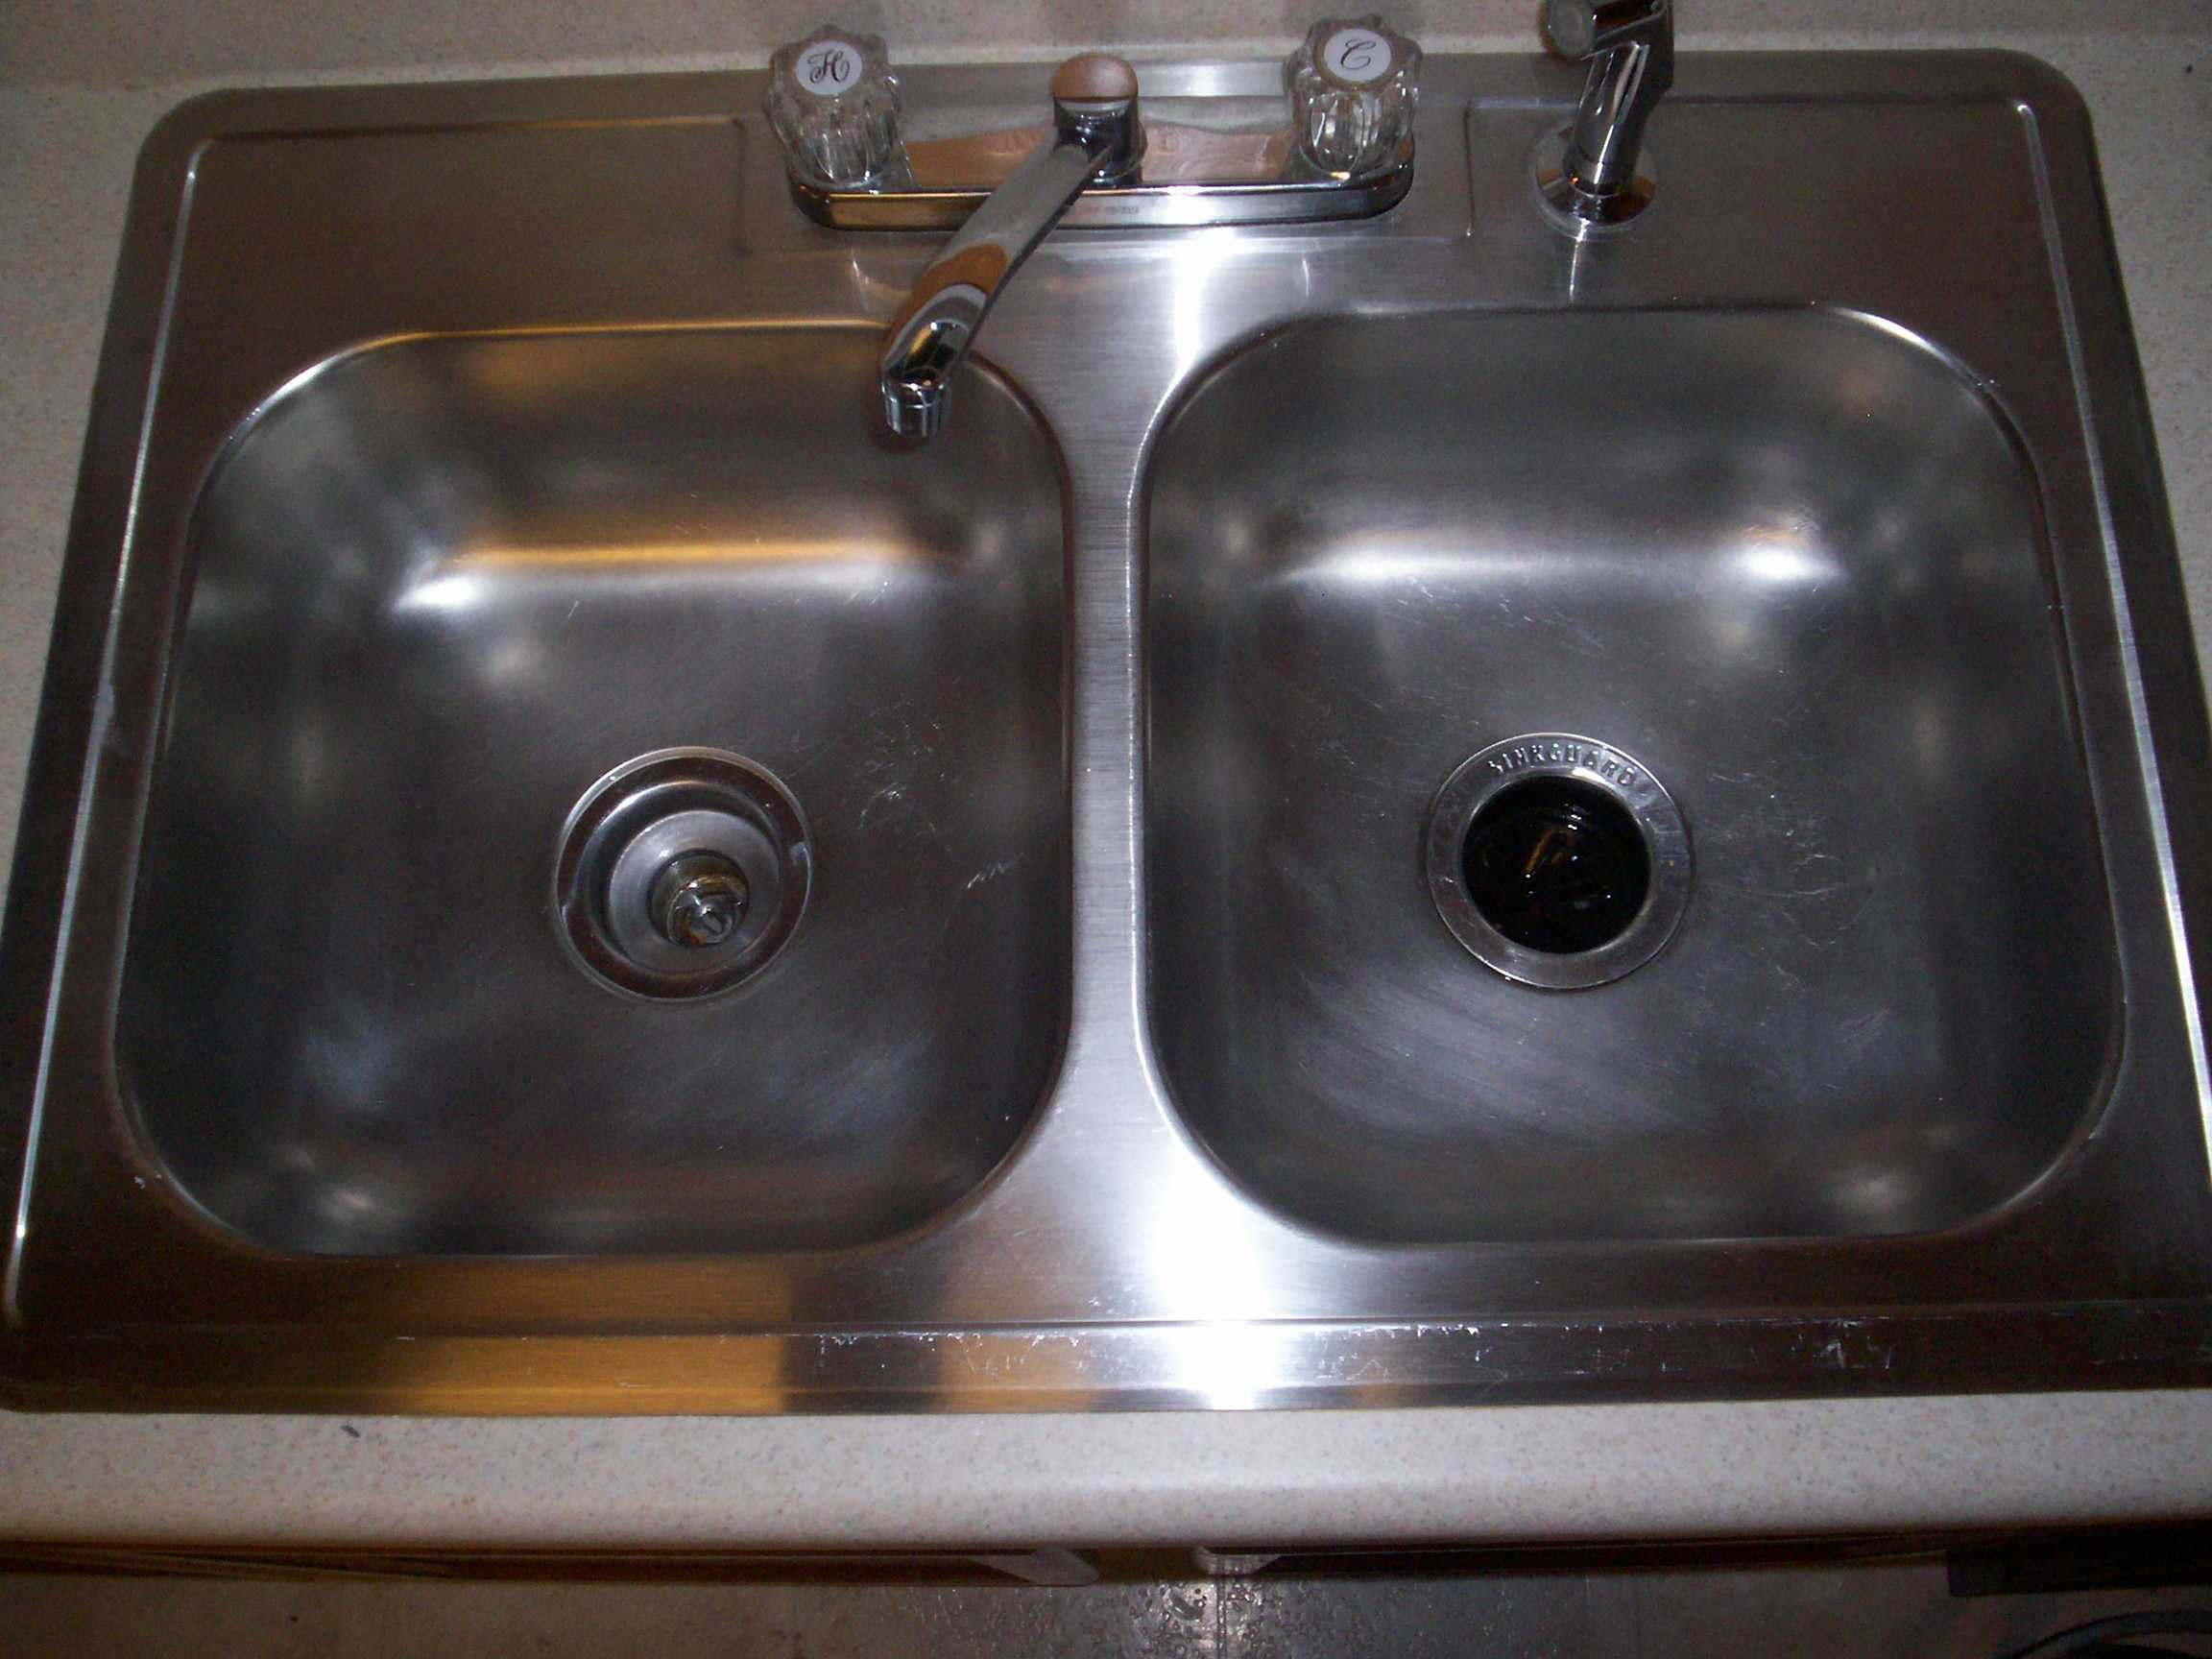 shiny stainless steel sink